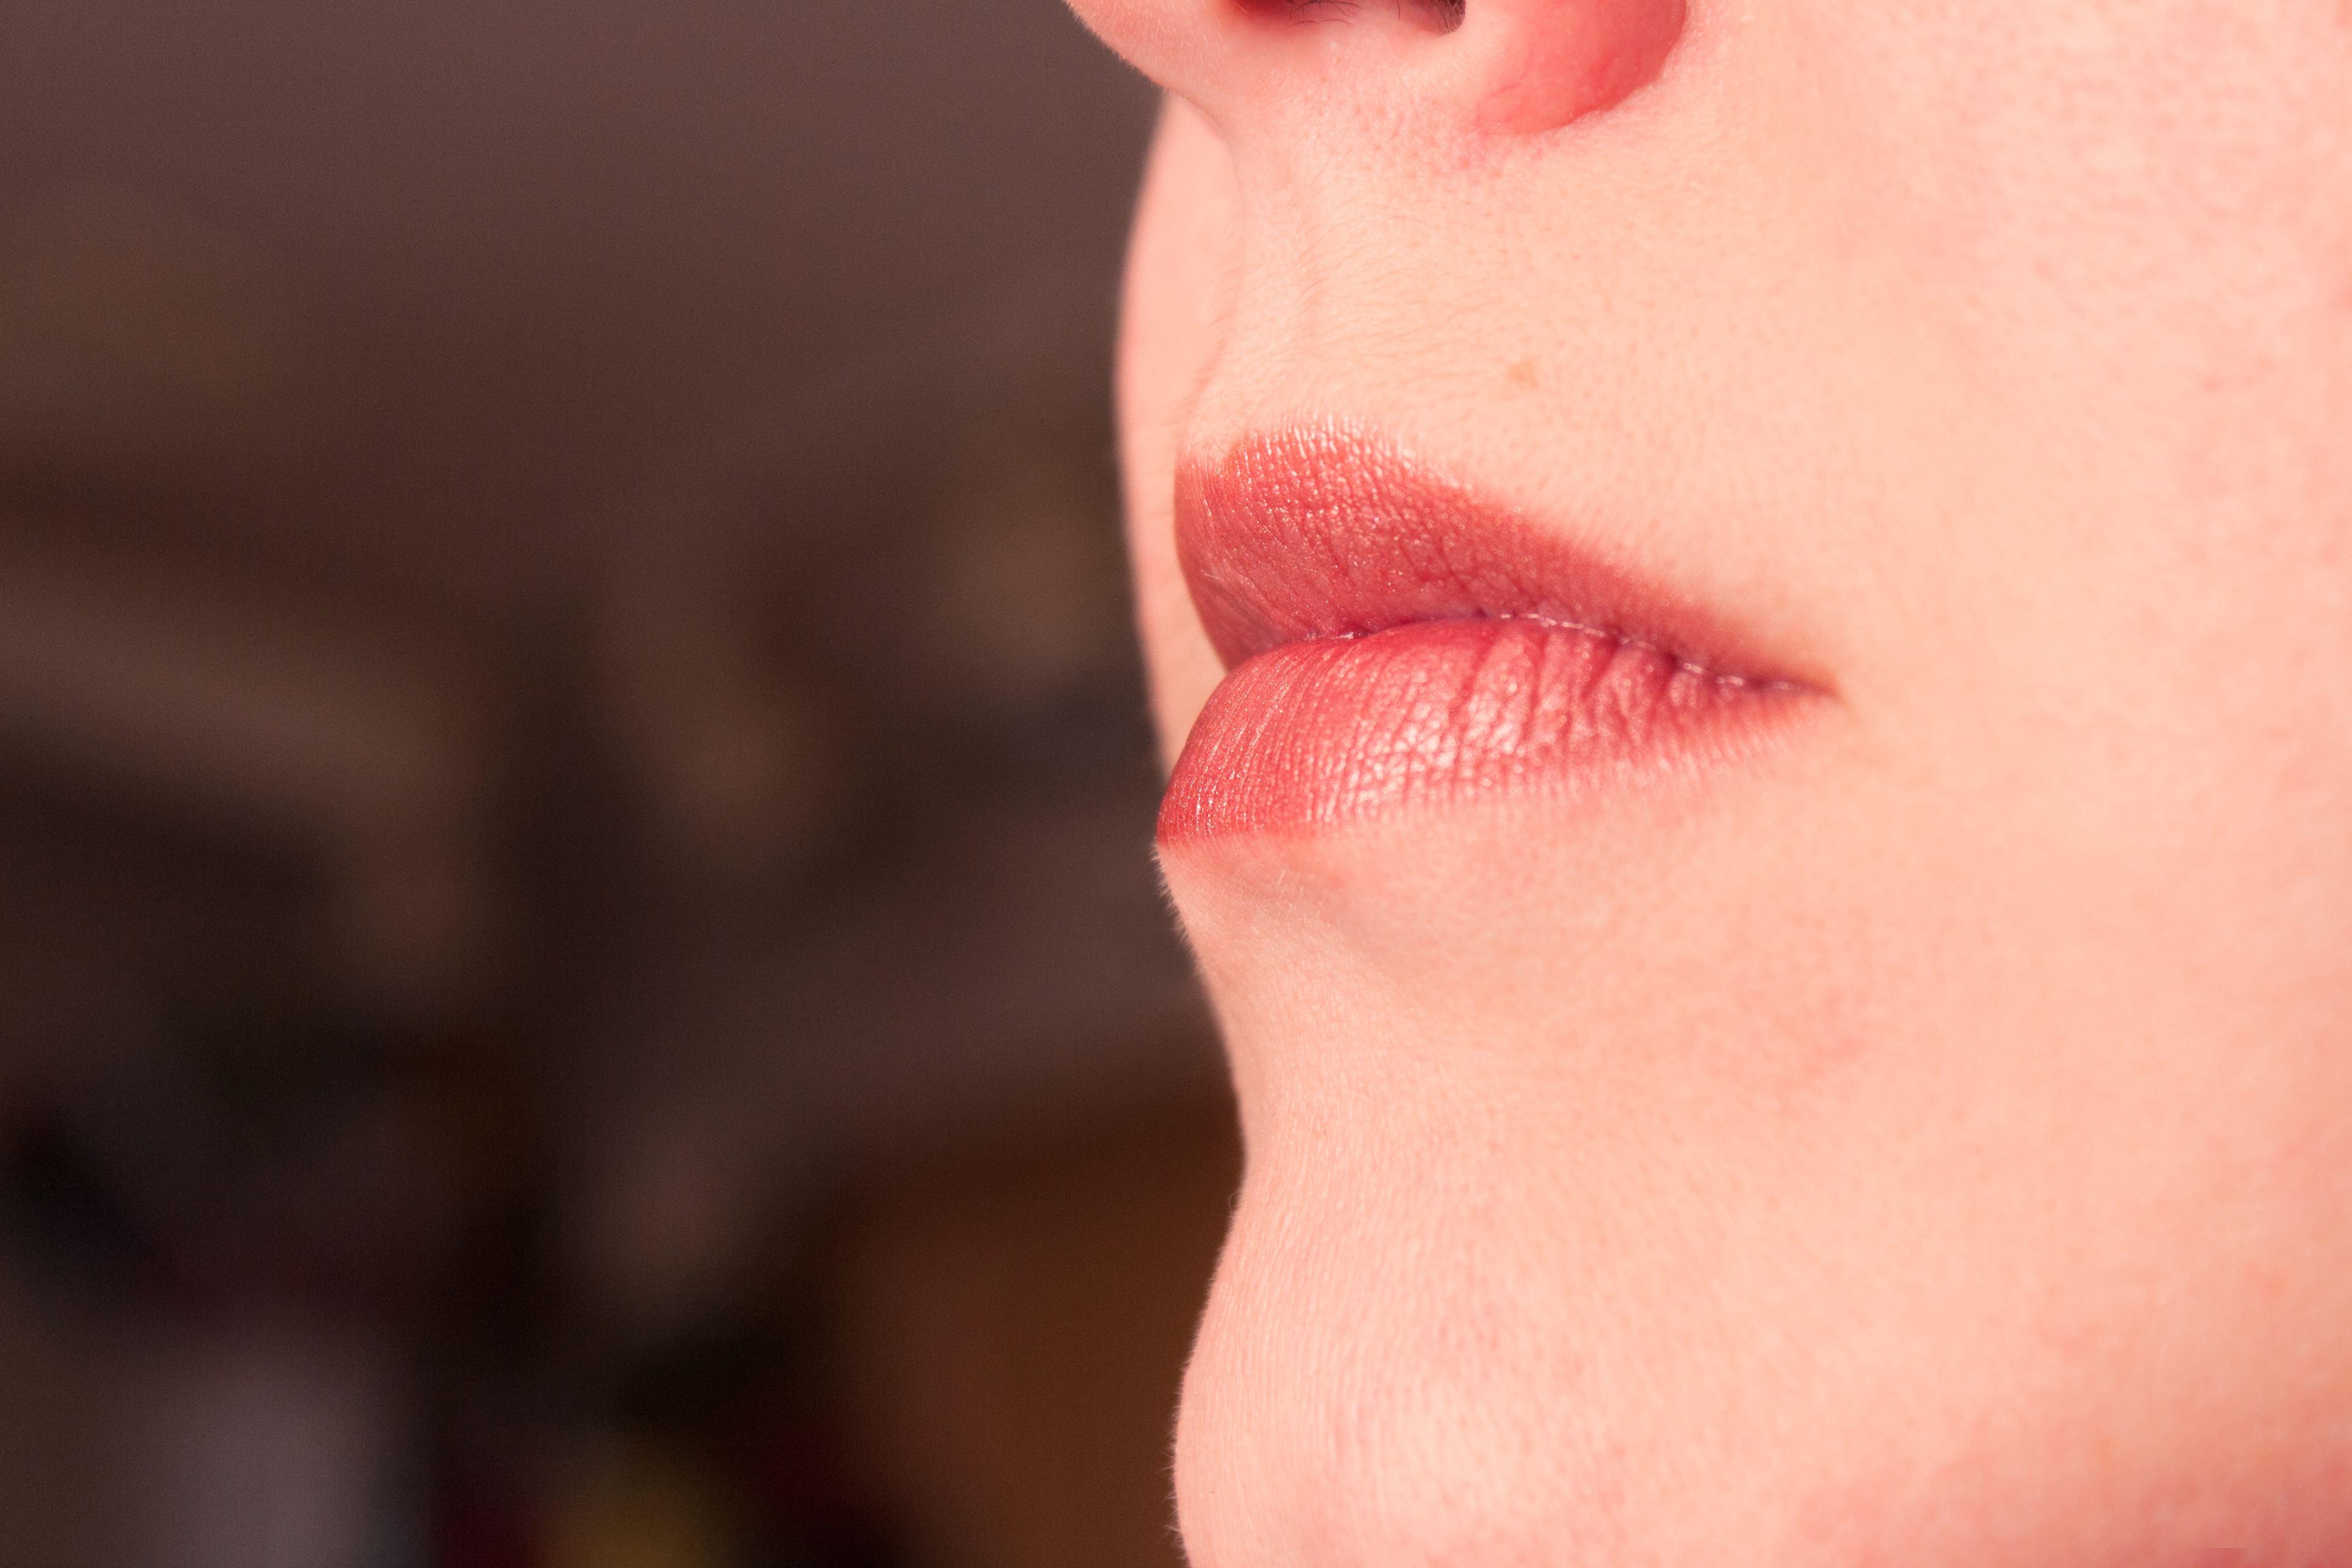 Is Vaseline Bad for Chapped Lips?